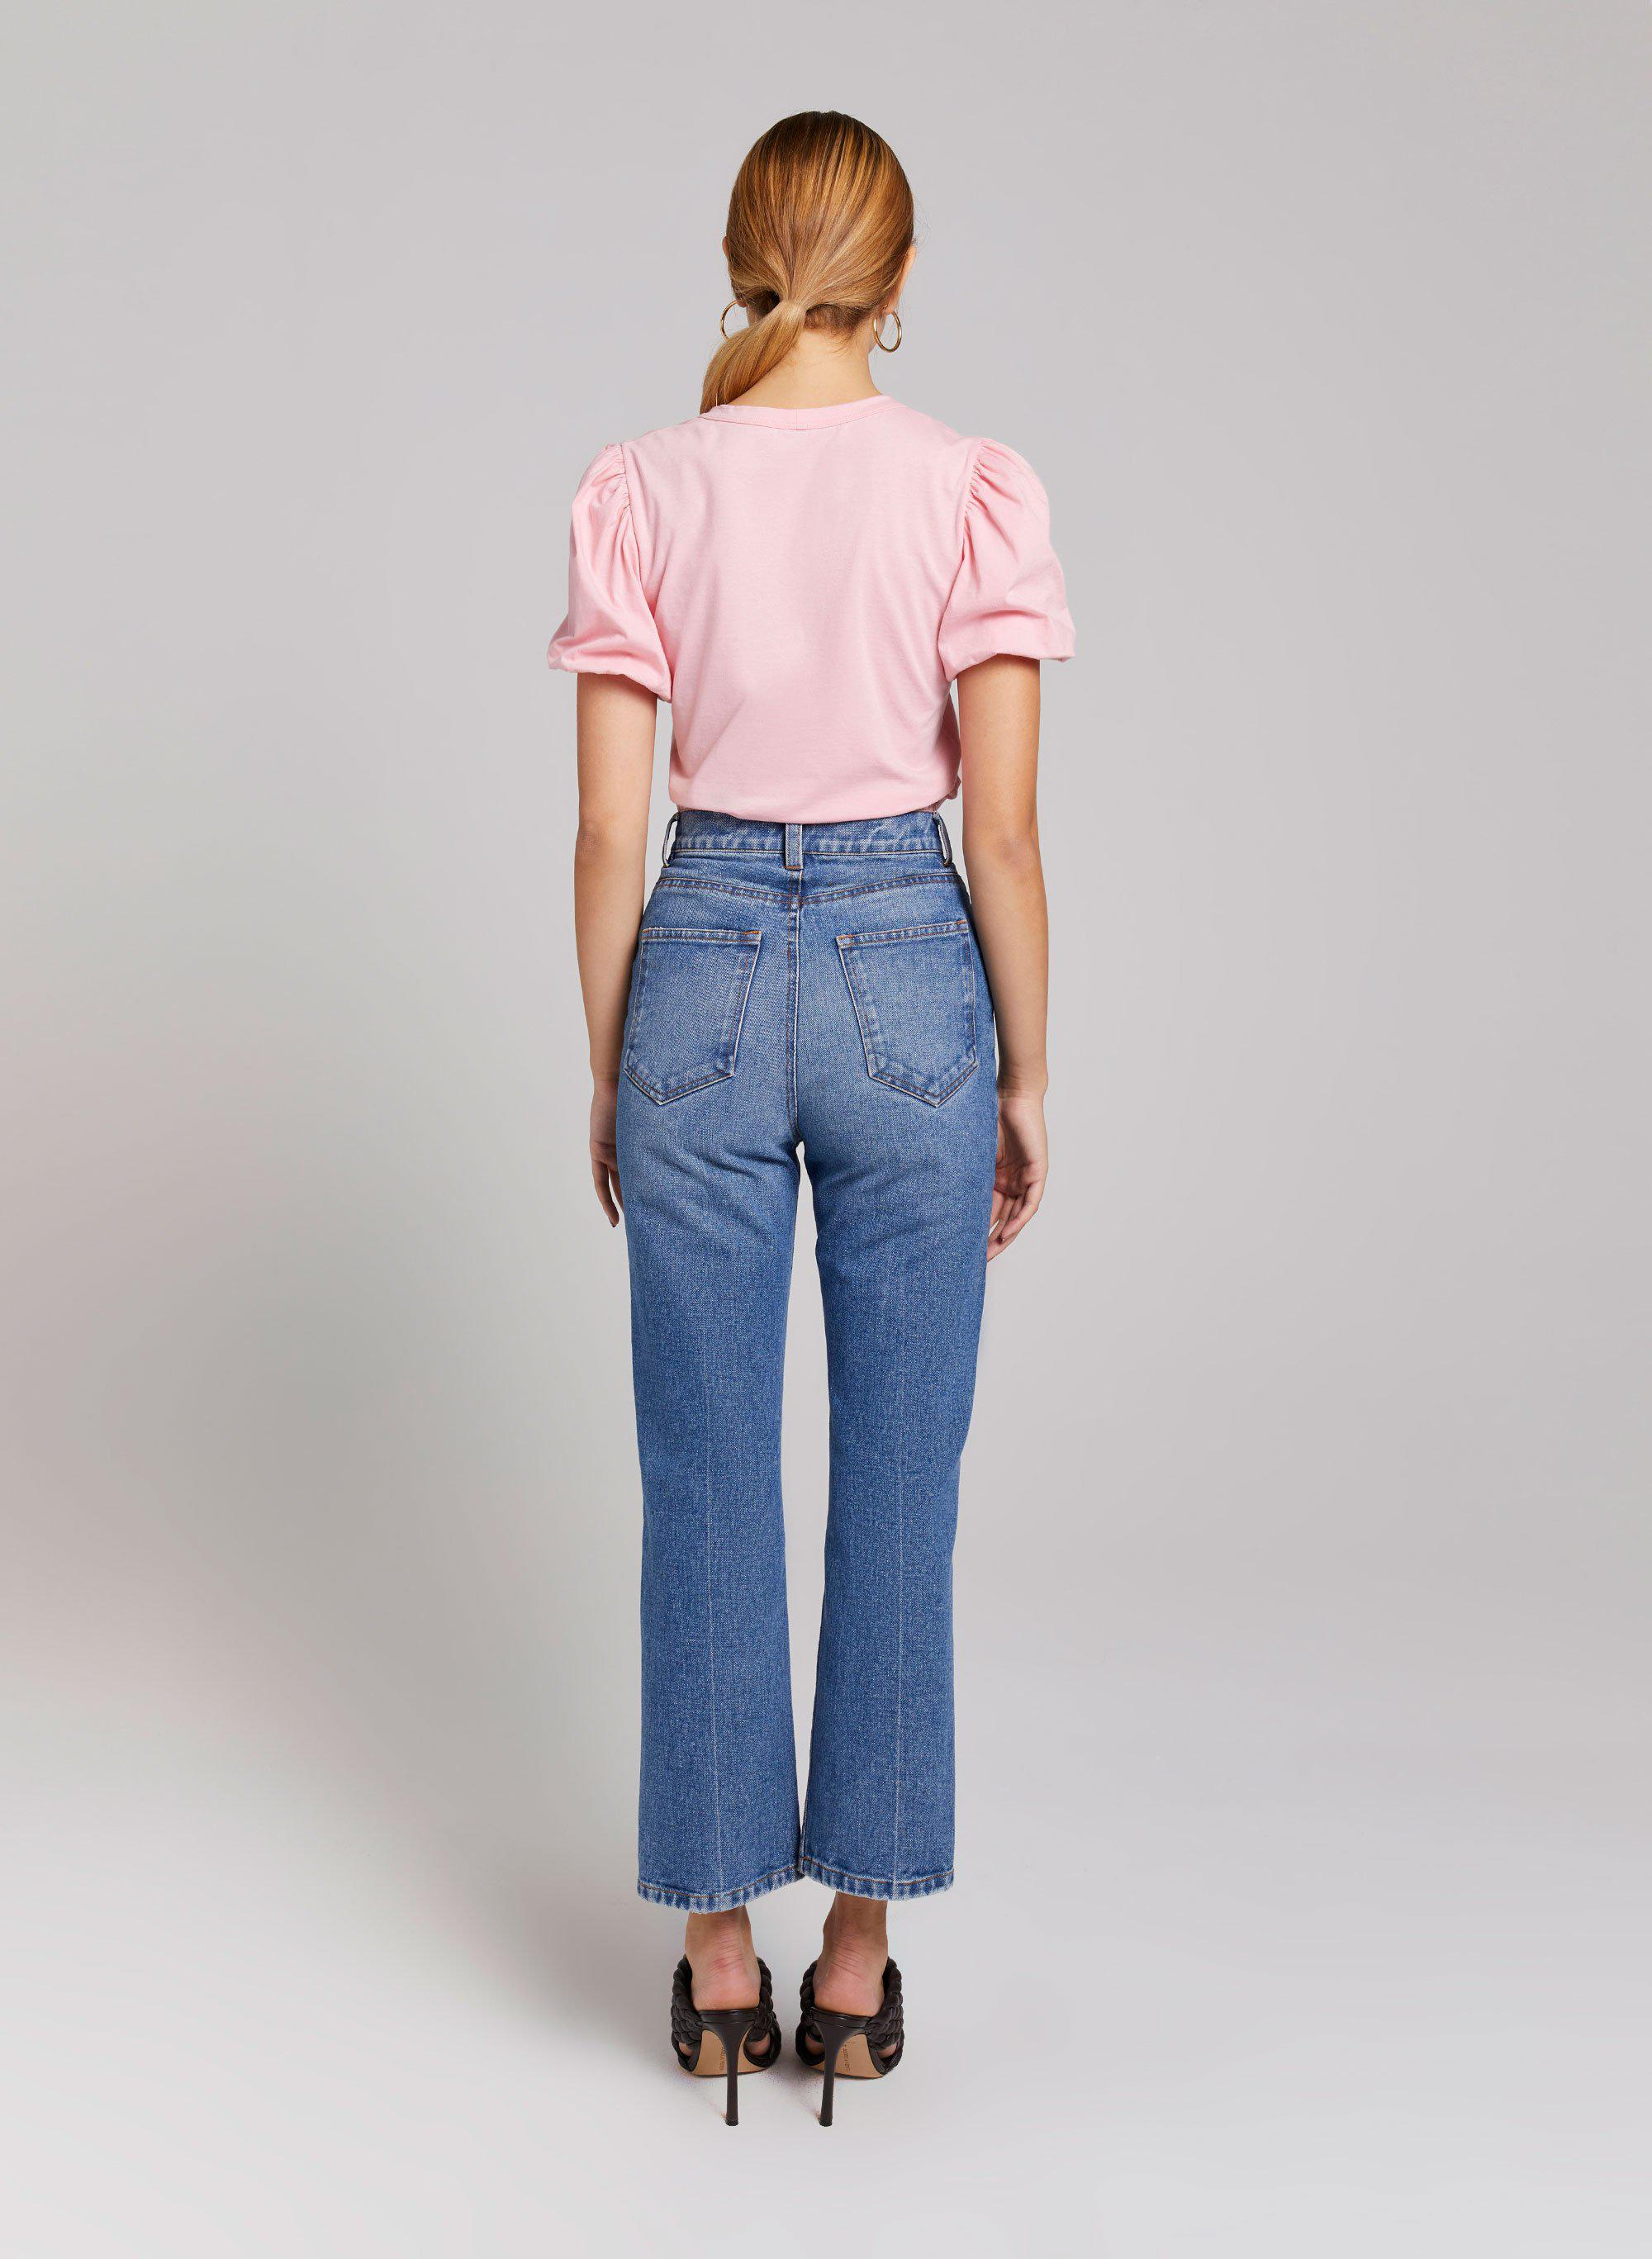 Poole Cotton Jersey Tee 3